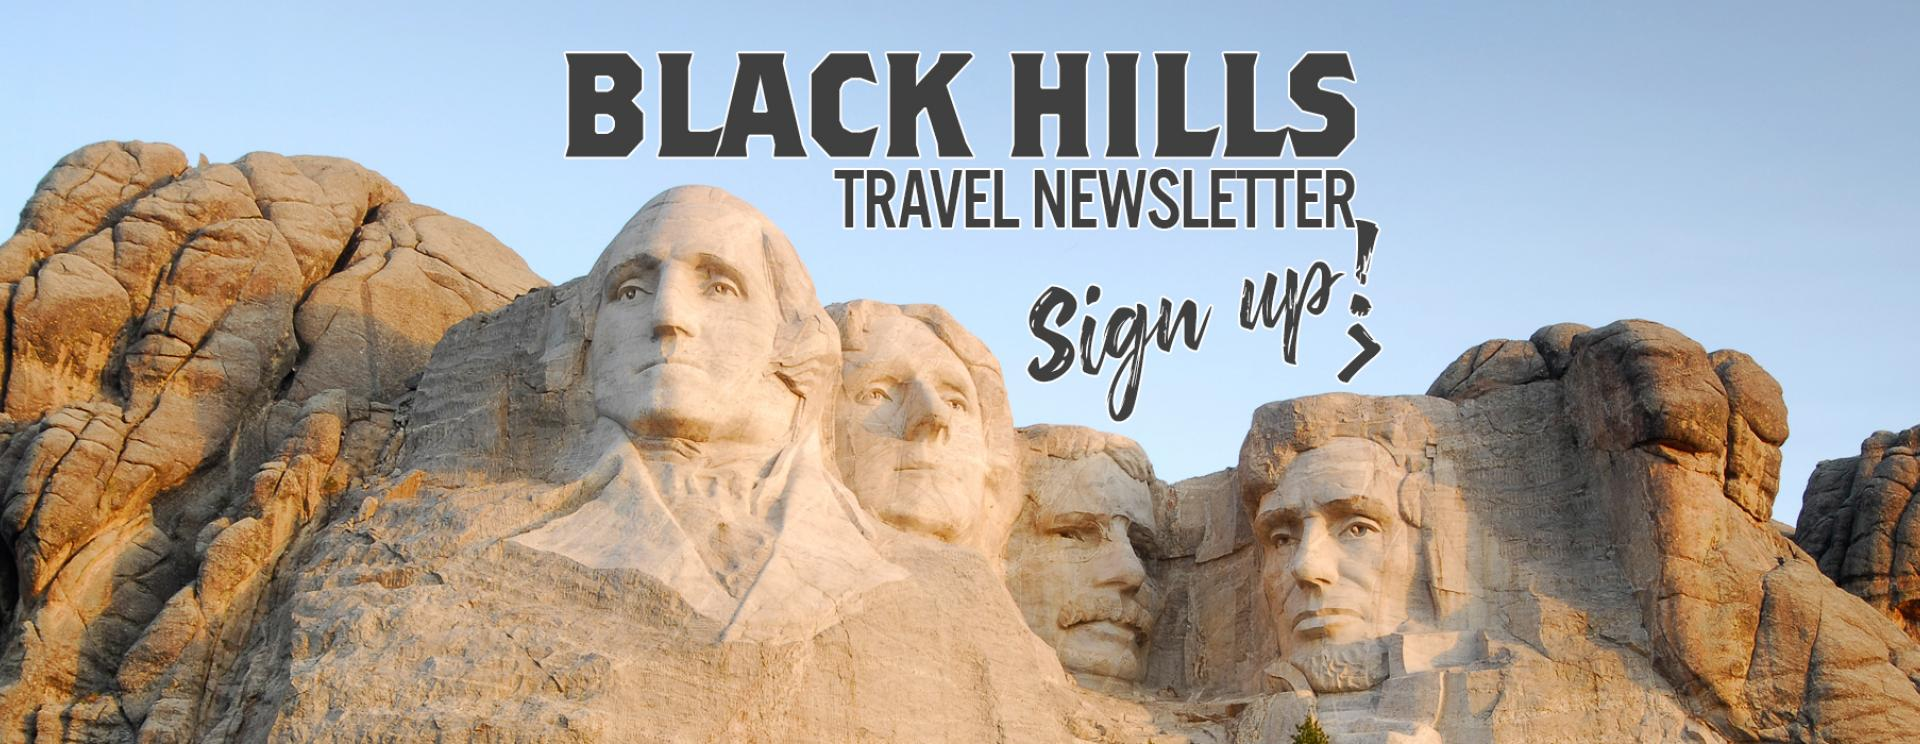 Black Hills Travel Newsletter